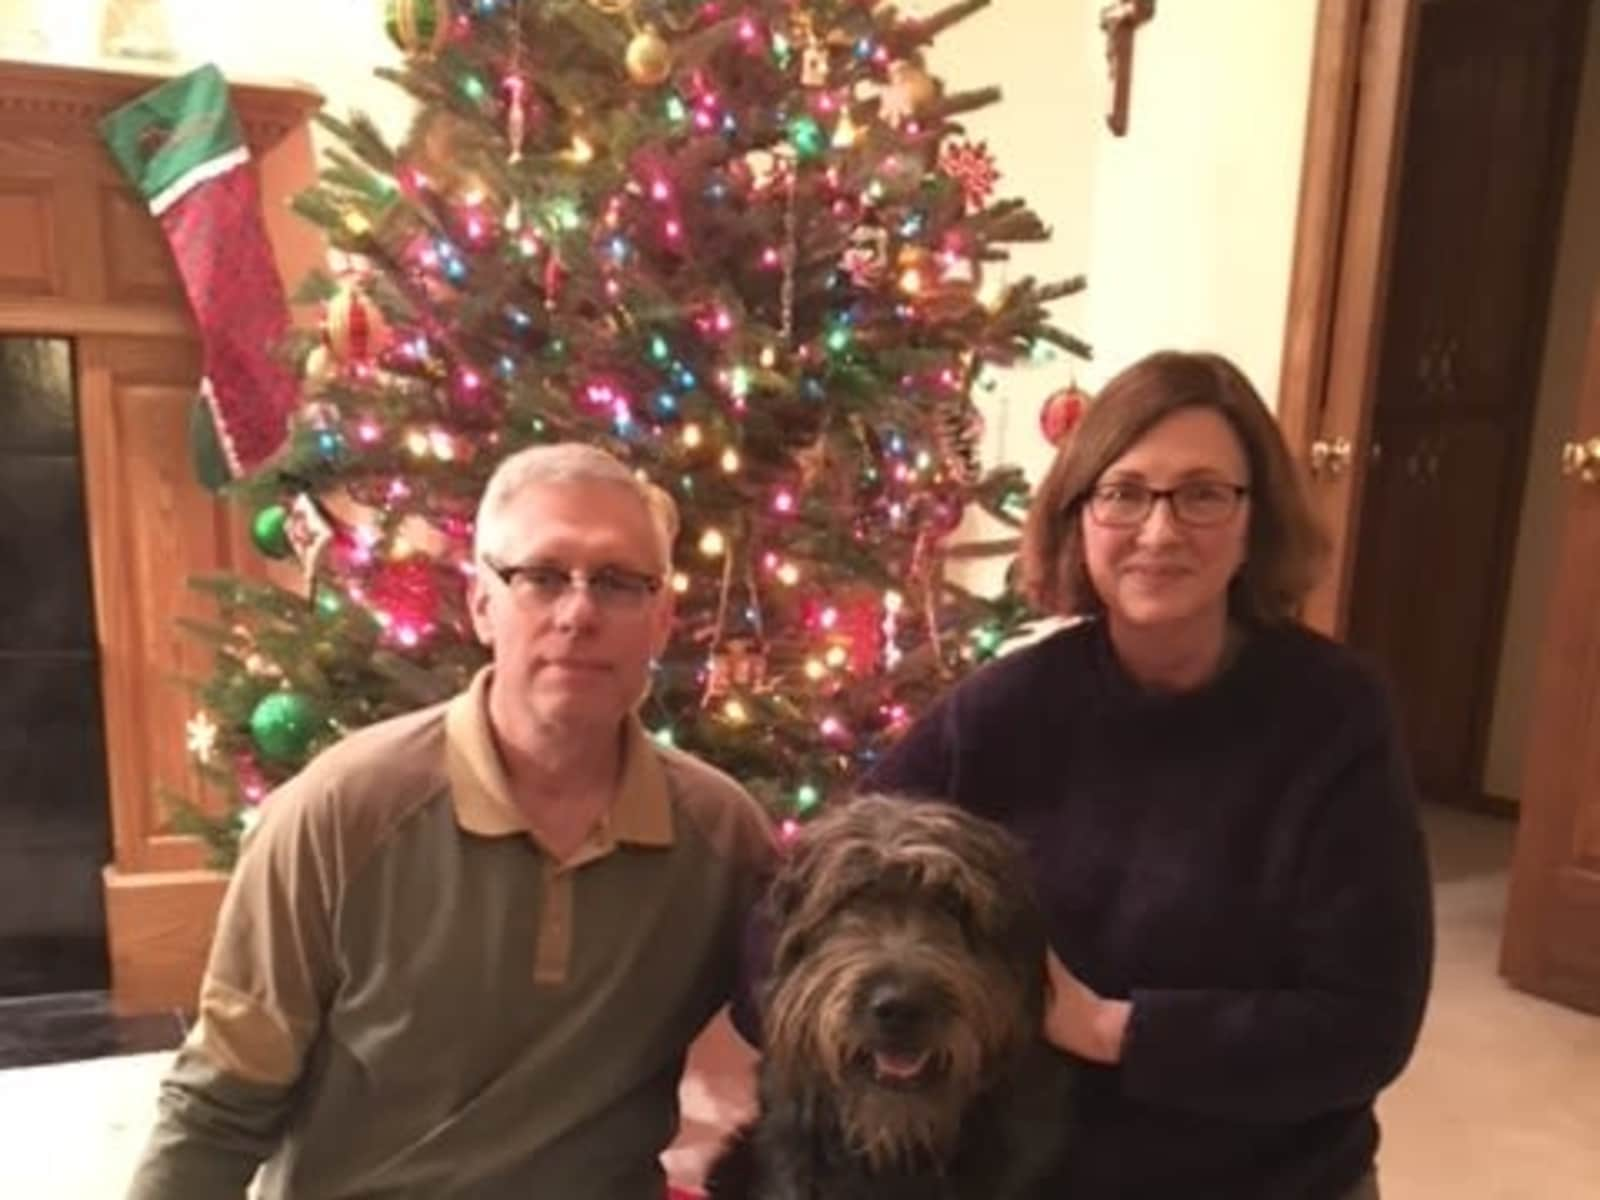 Cynthia & Mark from Green Bay, Wisconsin, United States